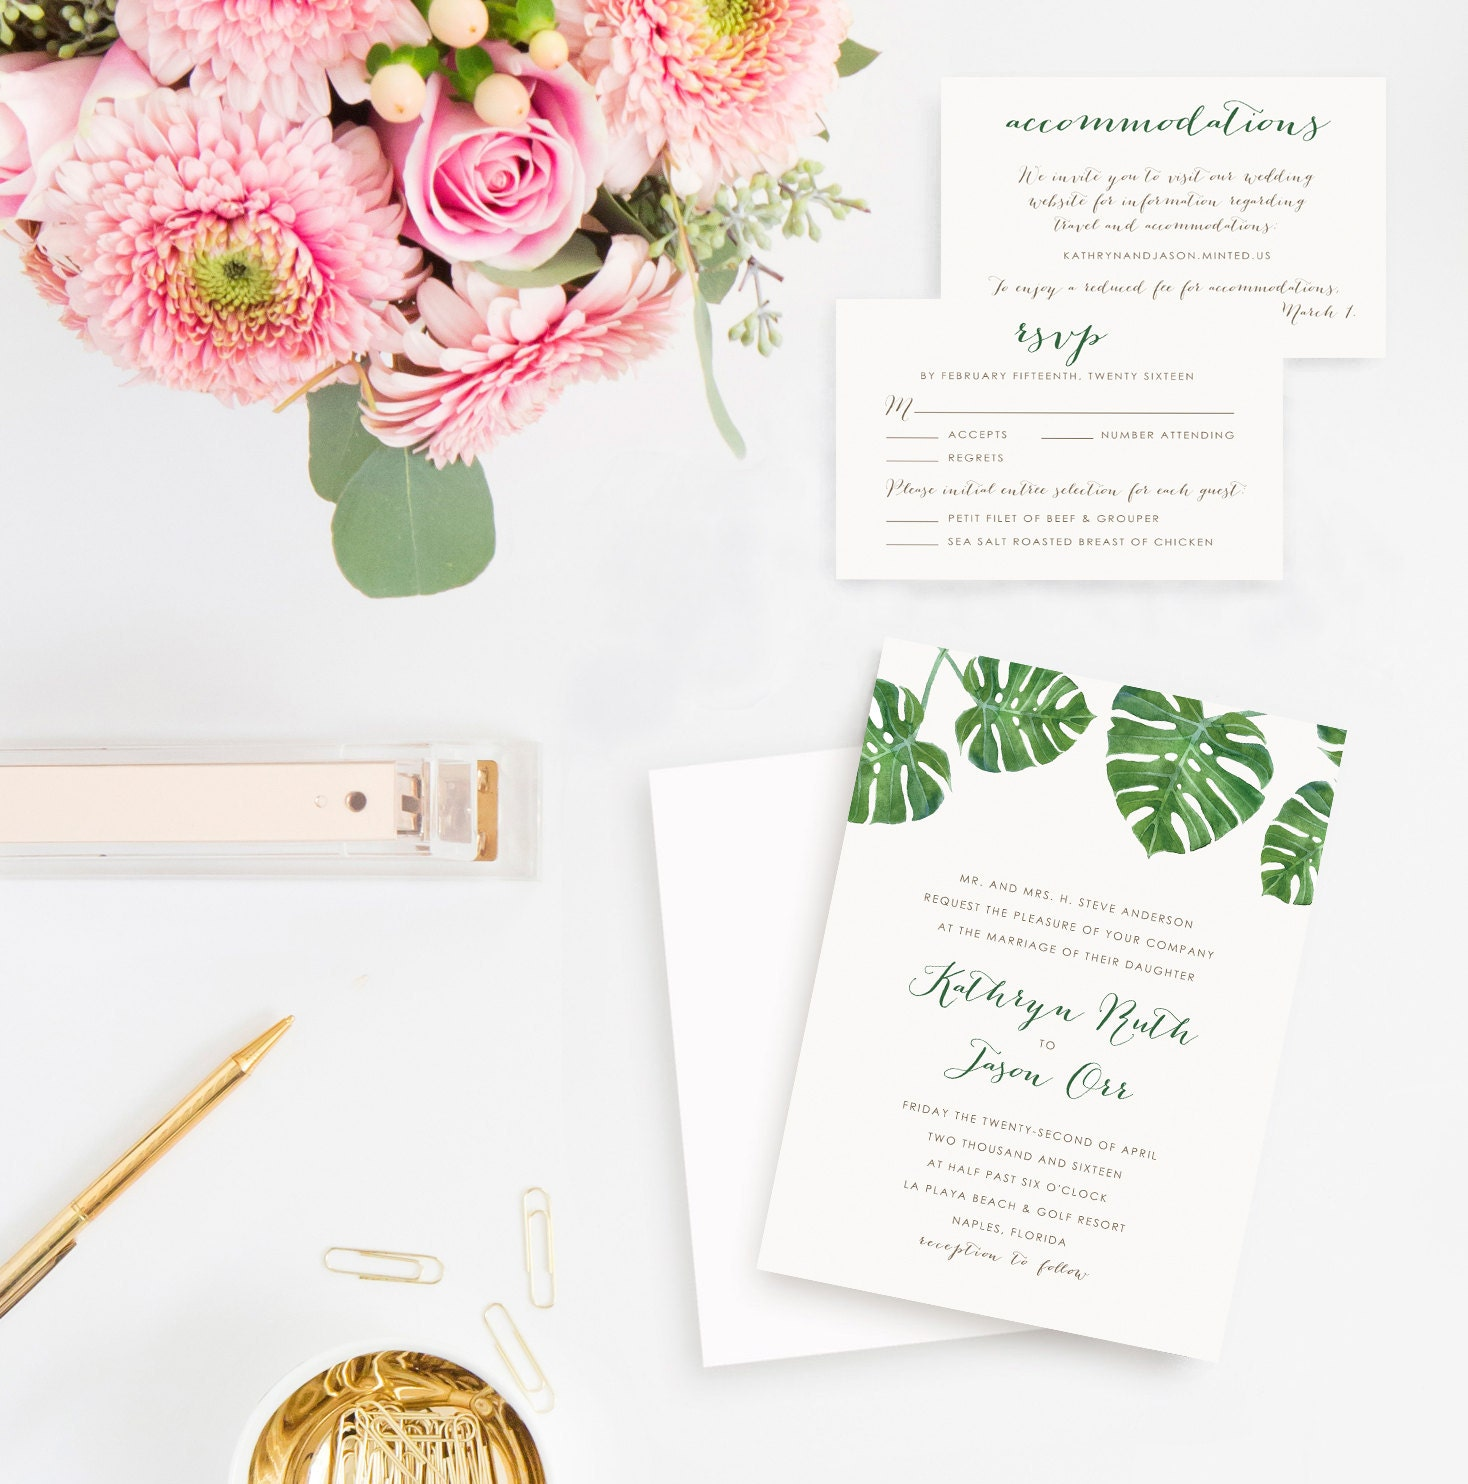 Destination Wedding Quotes For Invitations: Palm Leaf Destination Wedding Invitation Set: RSVP Cards And